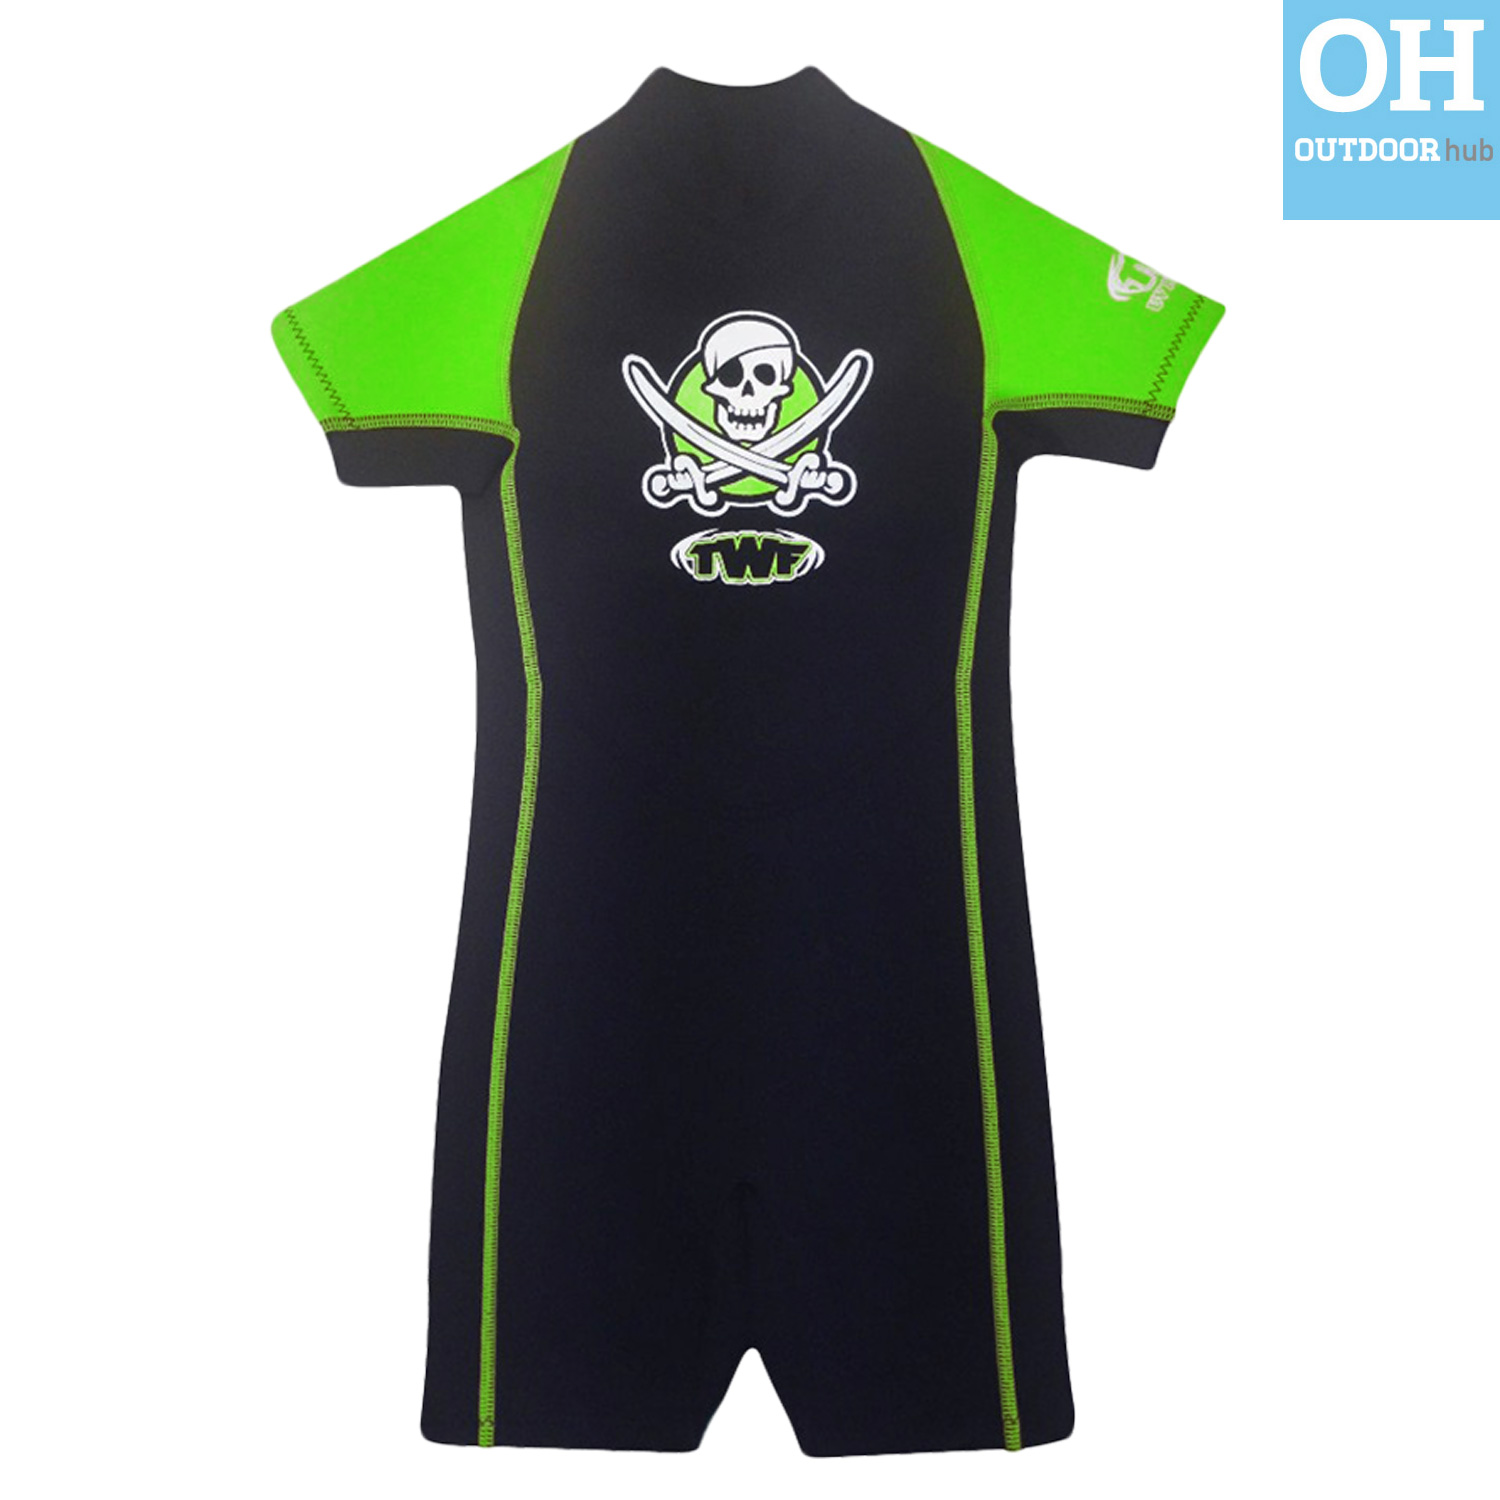 TWF-2mm-Kids-Shortie-Wetsuit-Childs-Shorty-Boys-Girls-Beach-Swim-Baby-Toddler thumbnail 12